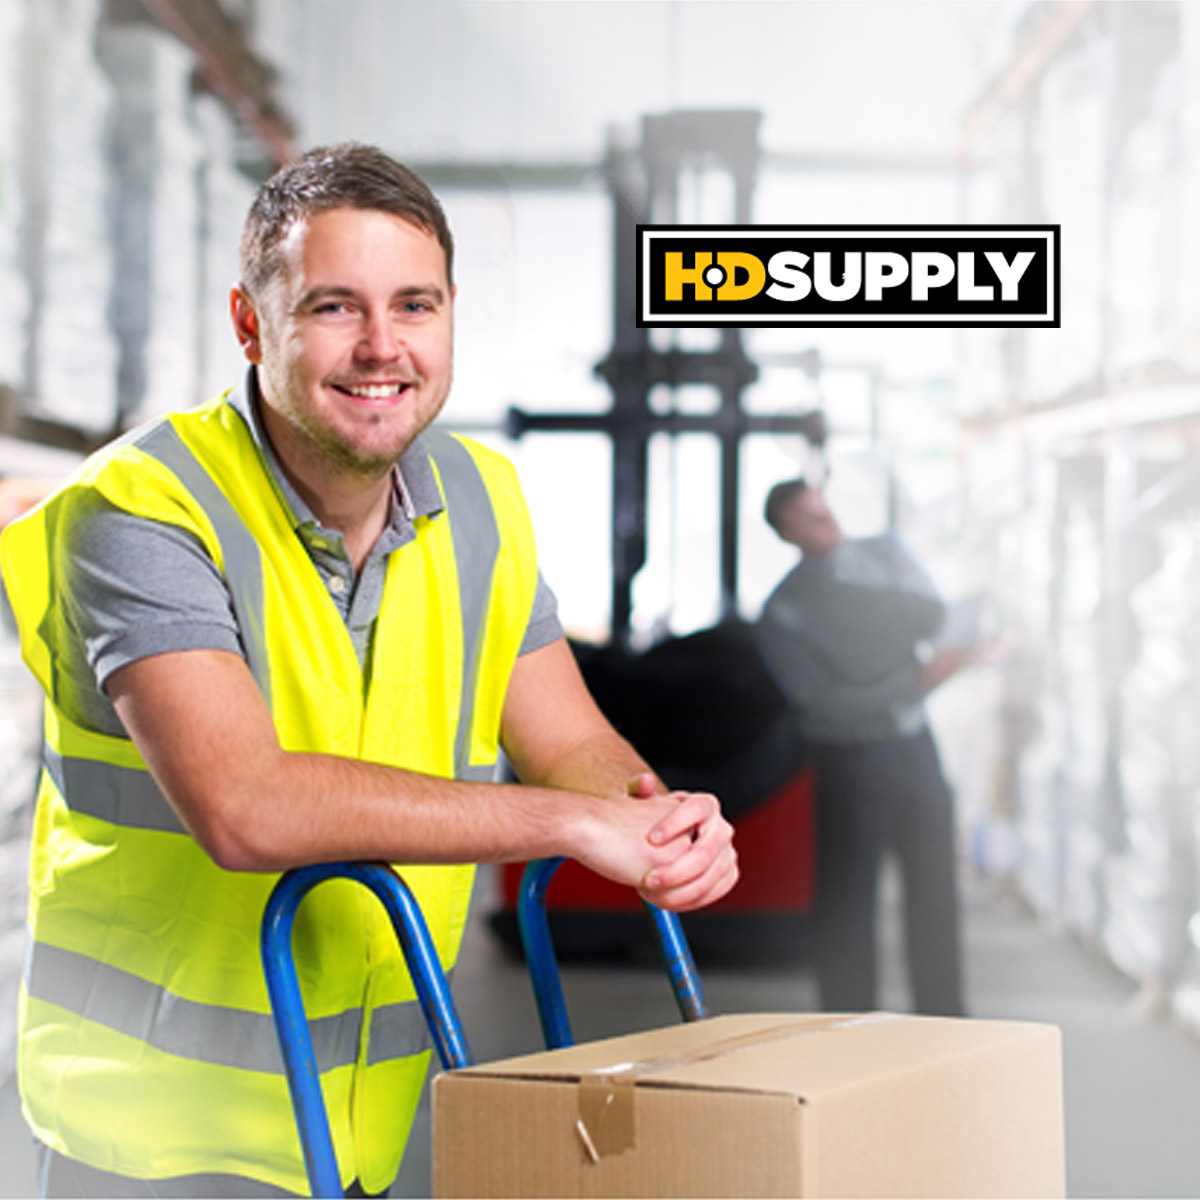 hd supply salary